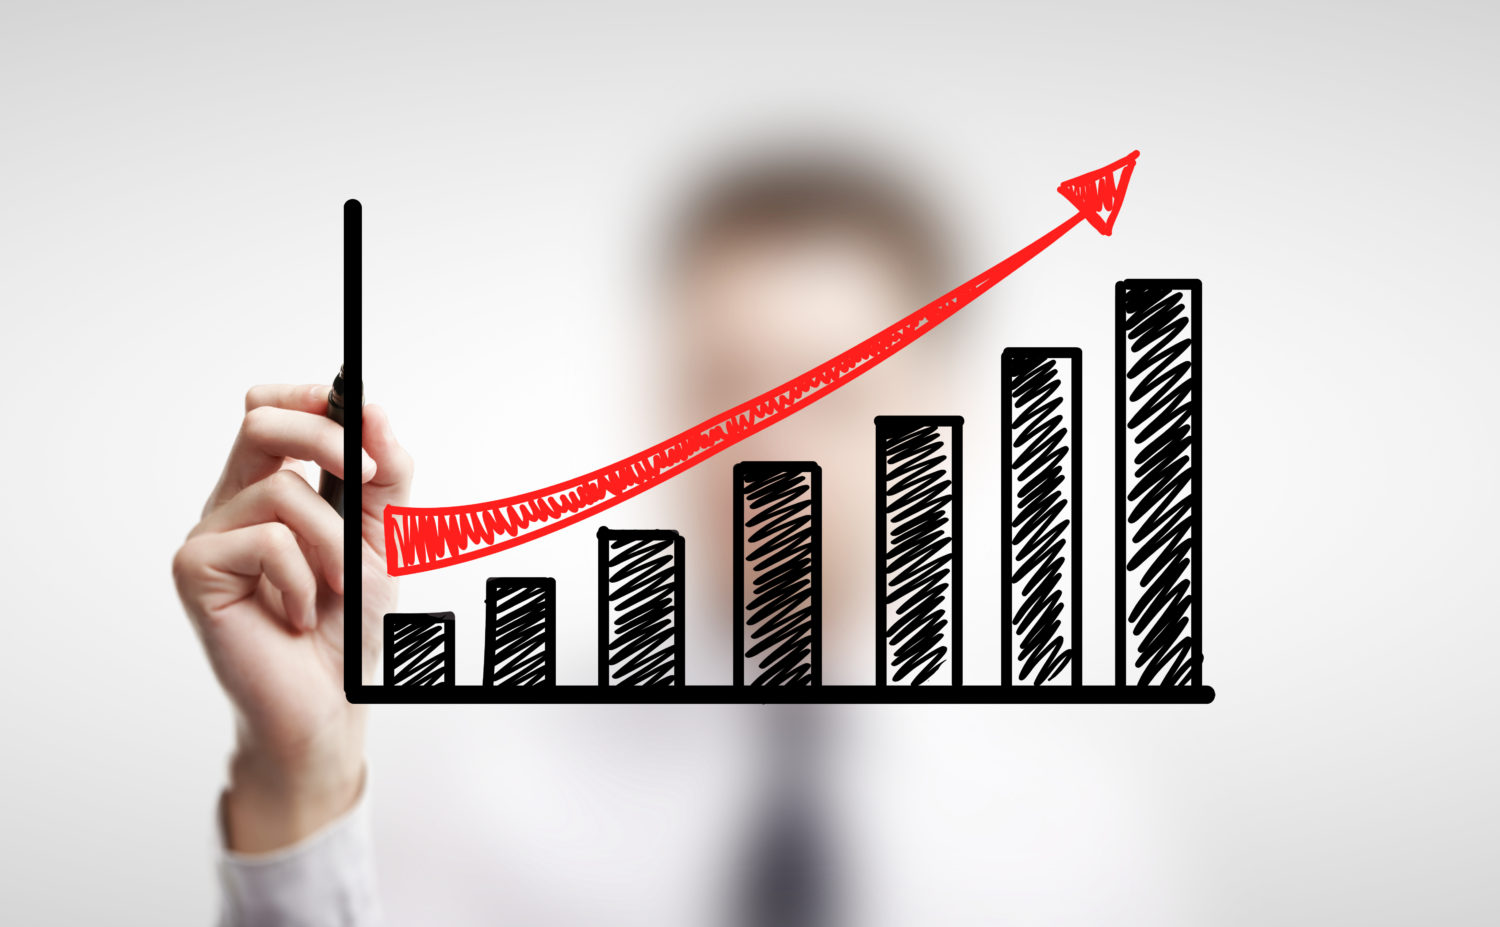 How to properly manage business growth | MWM Advisory